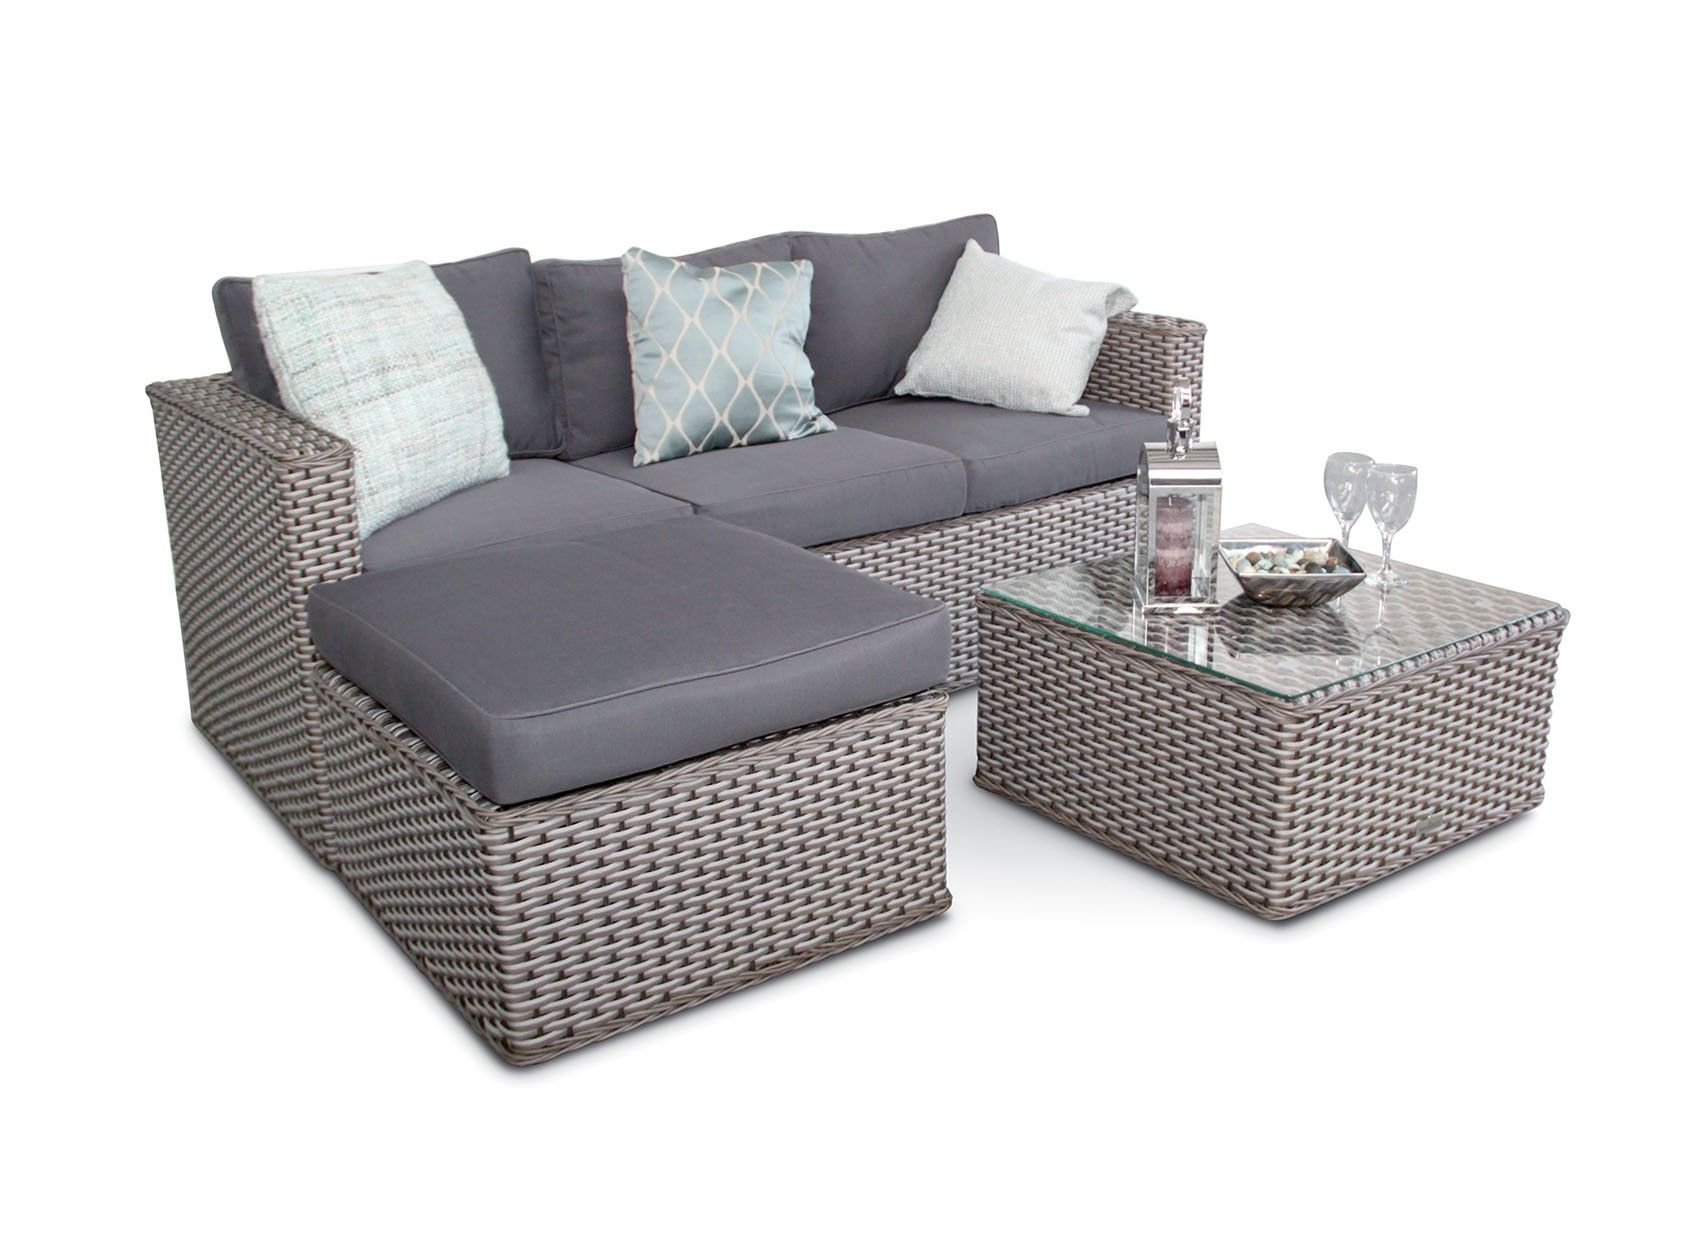 Bahamas Rattan 9 Seater Outdoor Sofa Set - 9-Seater - Whitewash